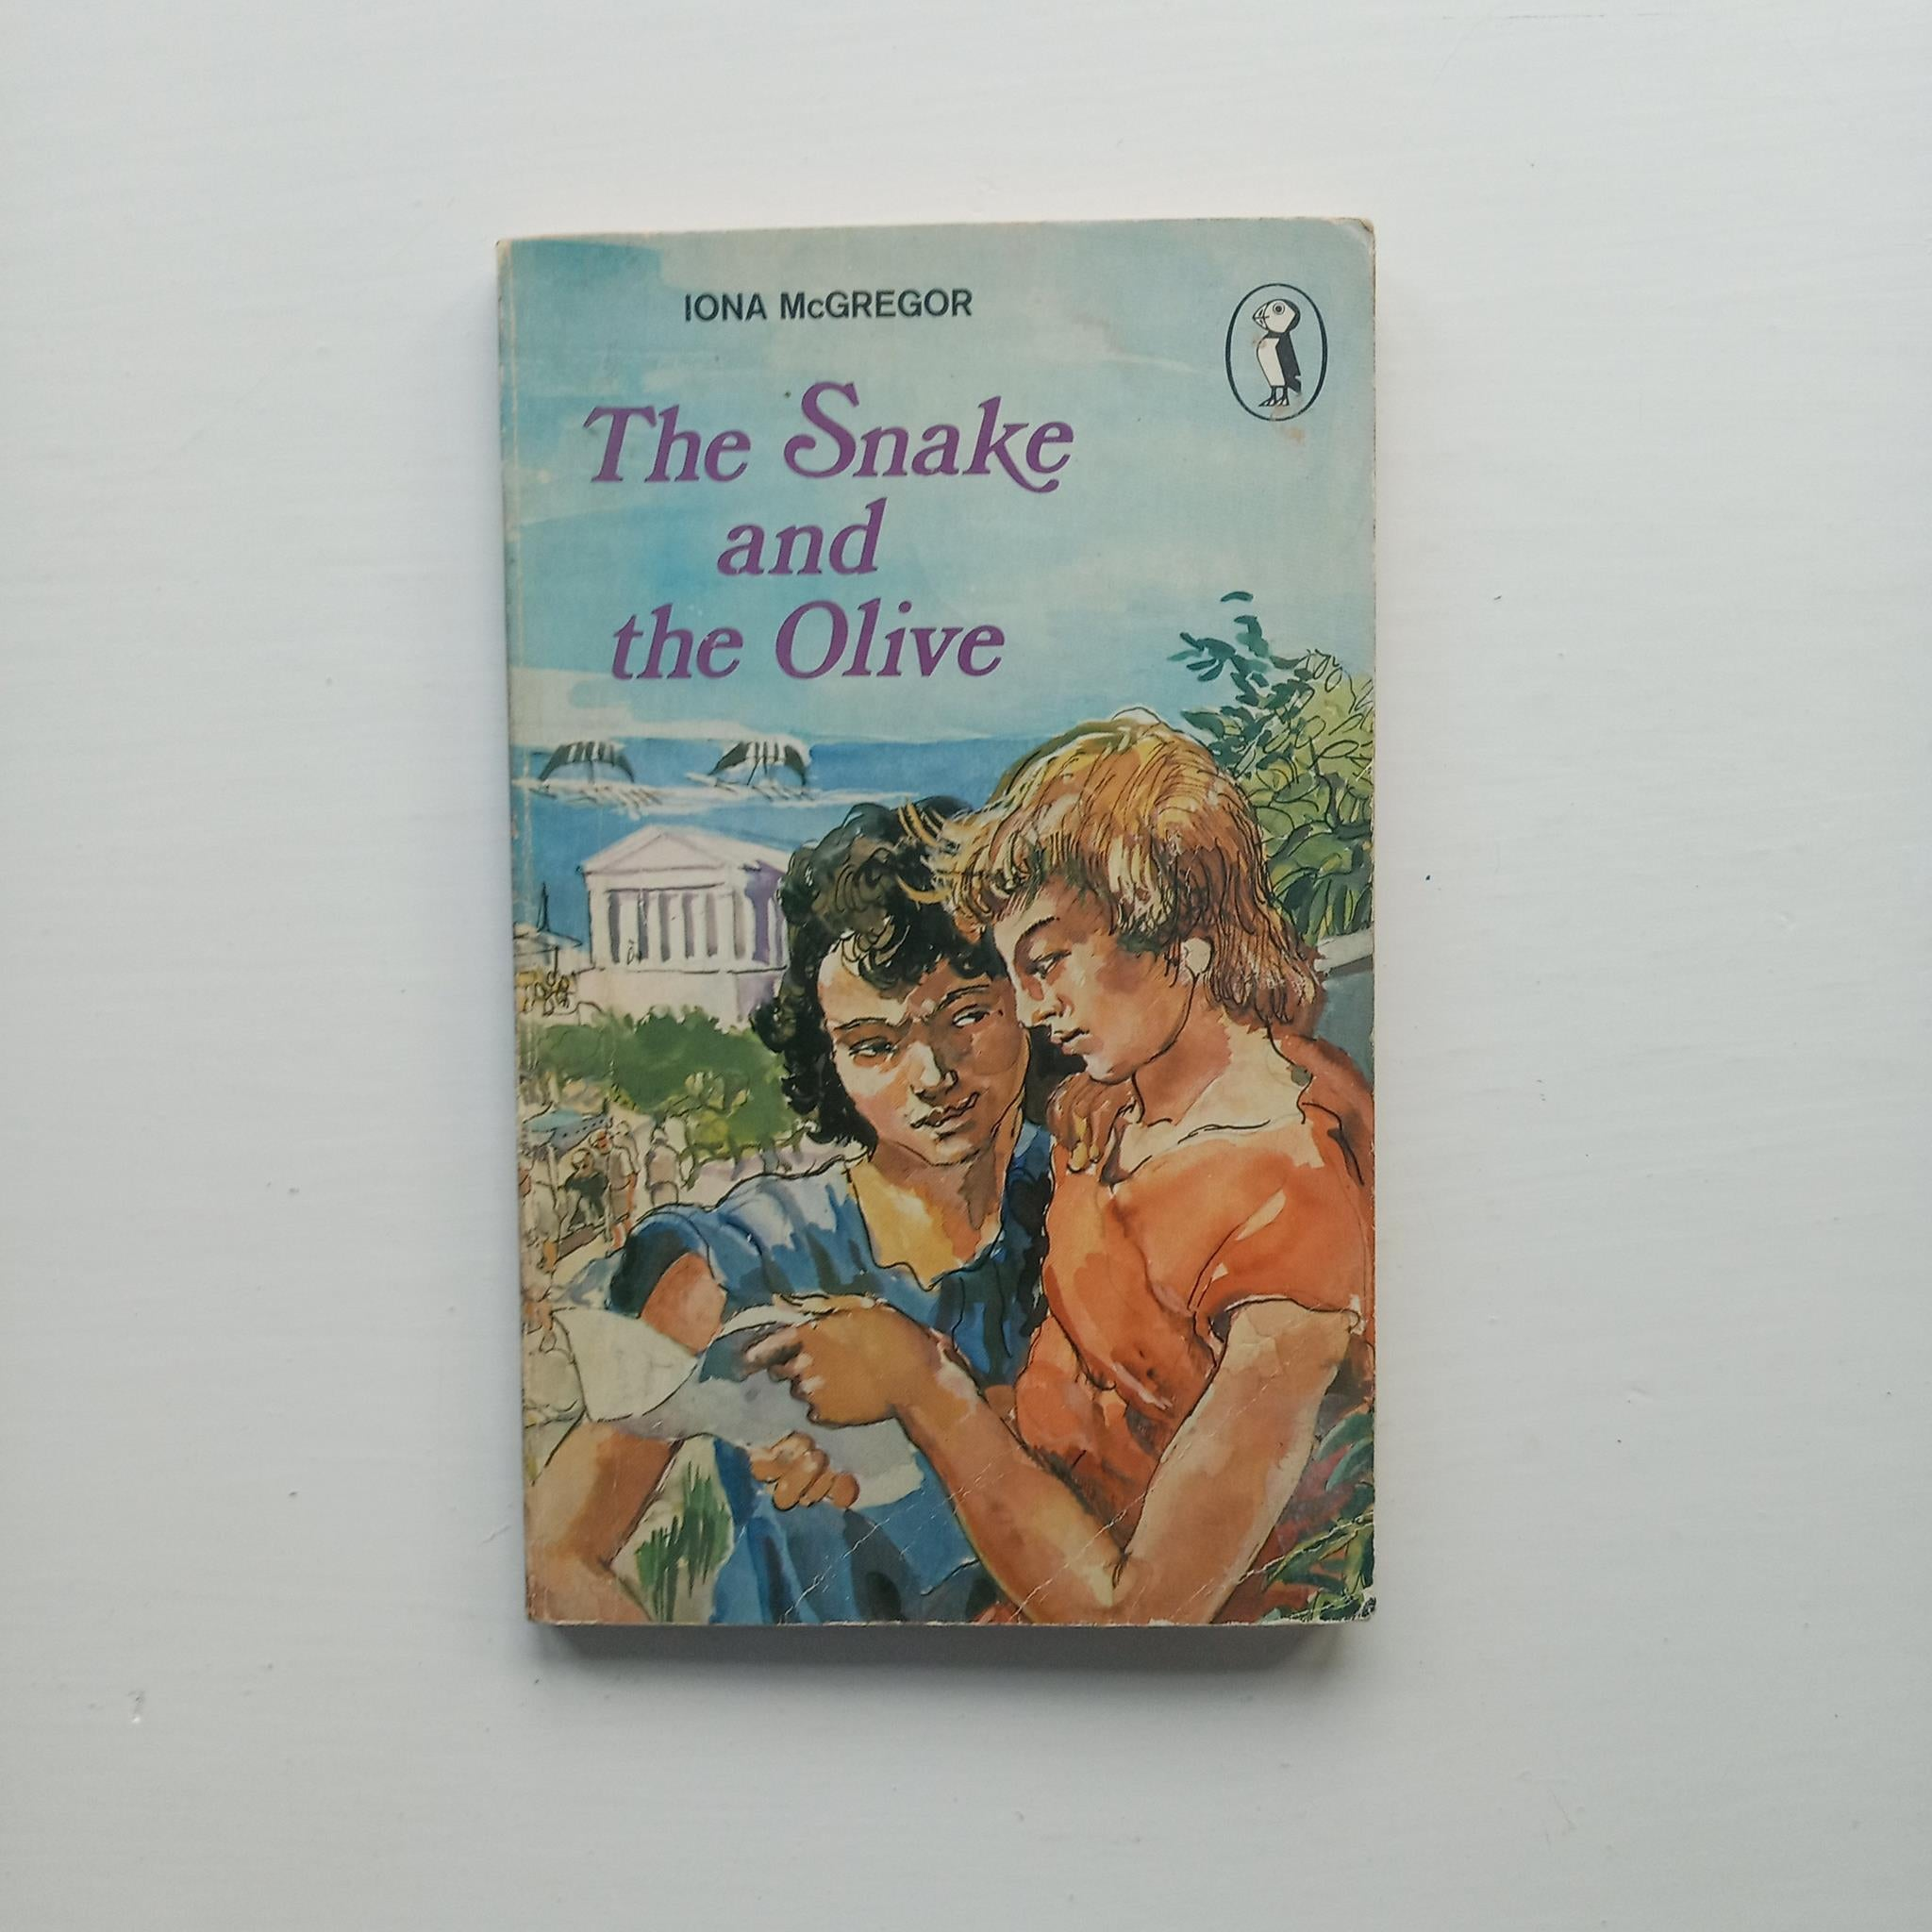 The Snake and the Olive by Iona McGregor